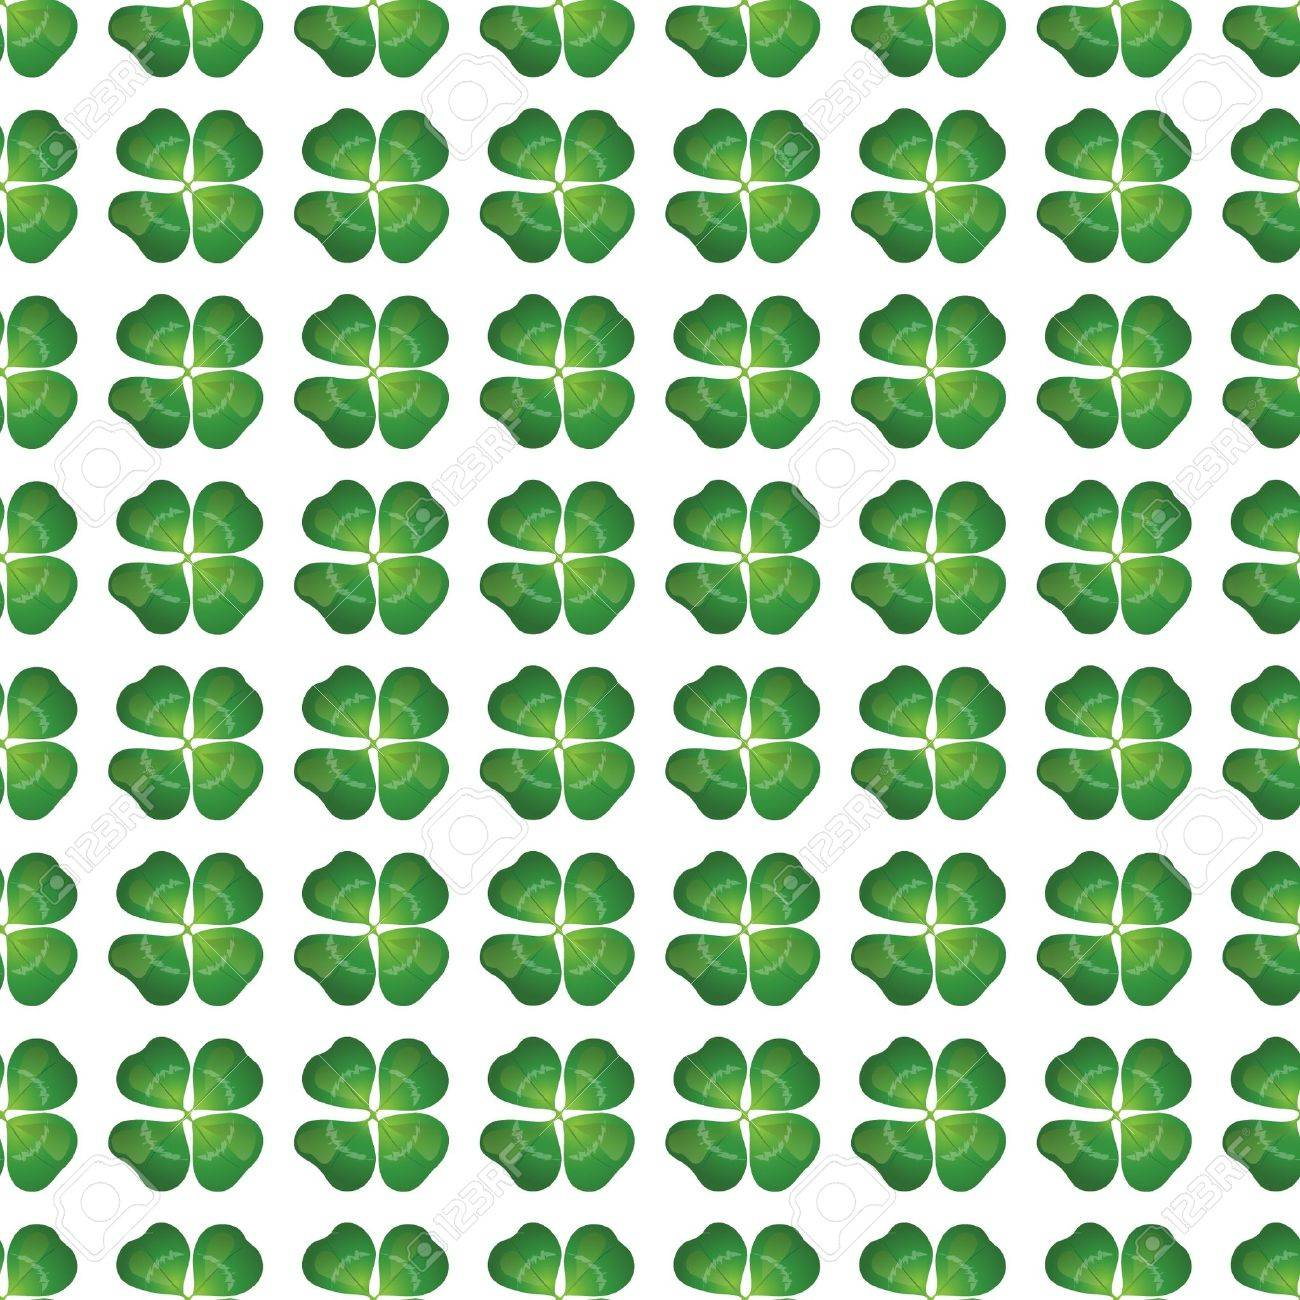 Four leaf clover seamless background. EPS10 vector format. Stock Vector - 10645685